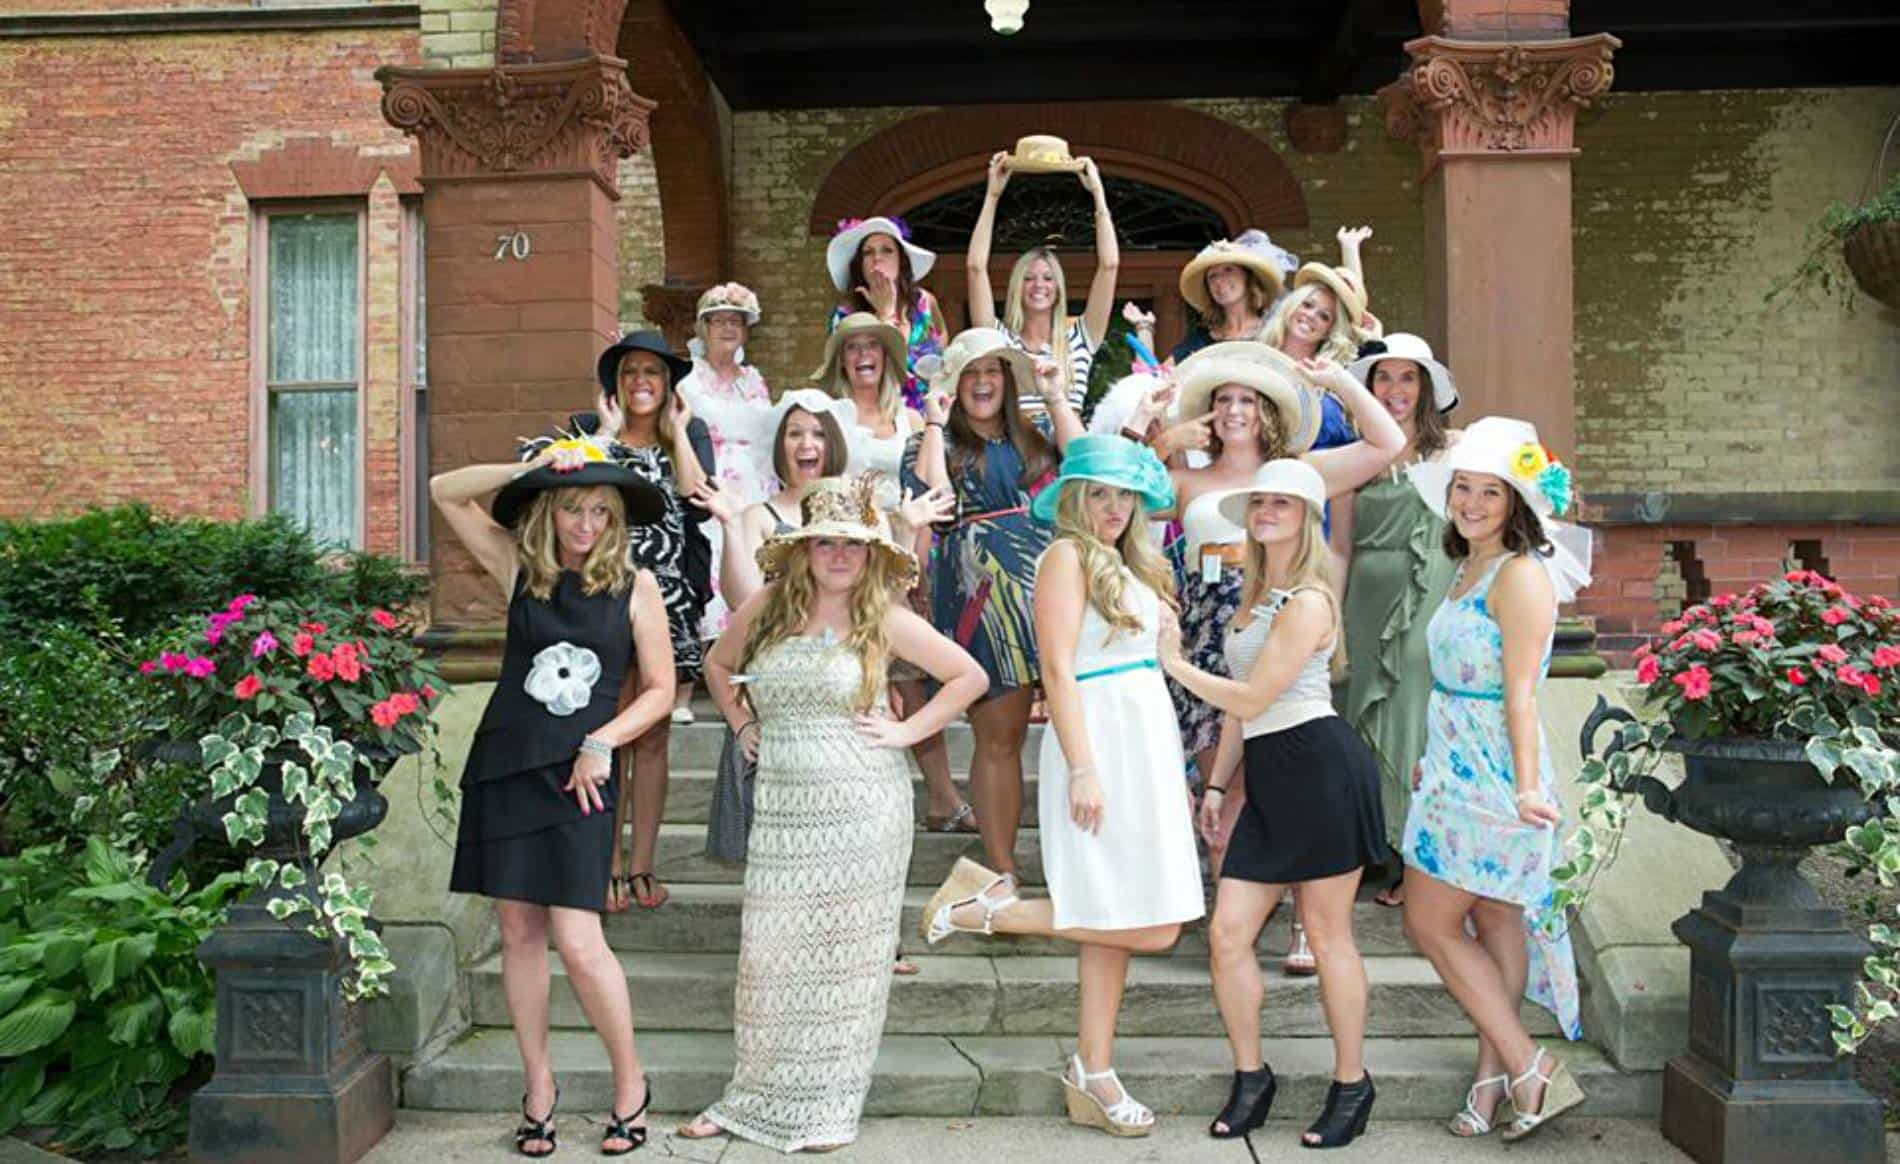 Group of women wearing colorful dresses and hats posing on the concrete steps leading up to the front door